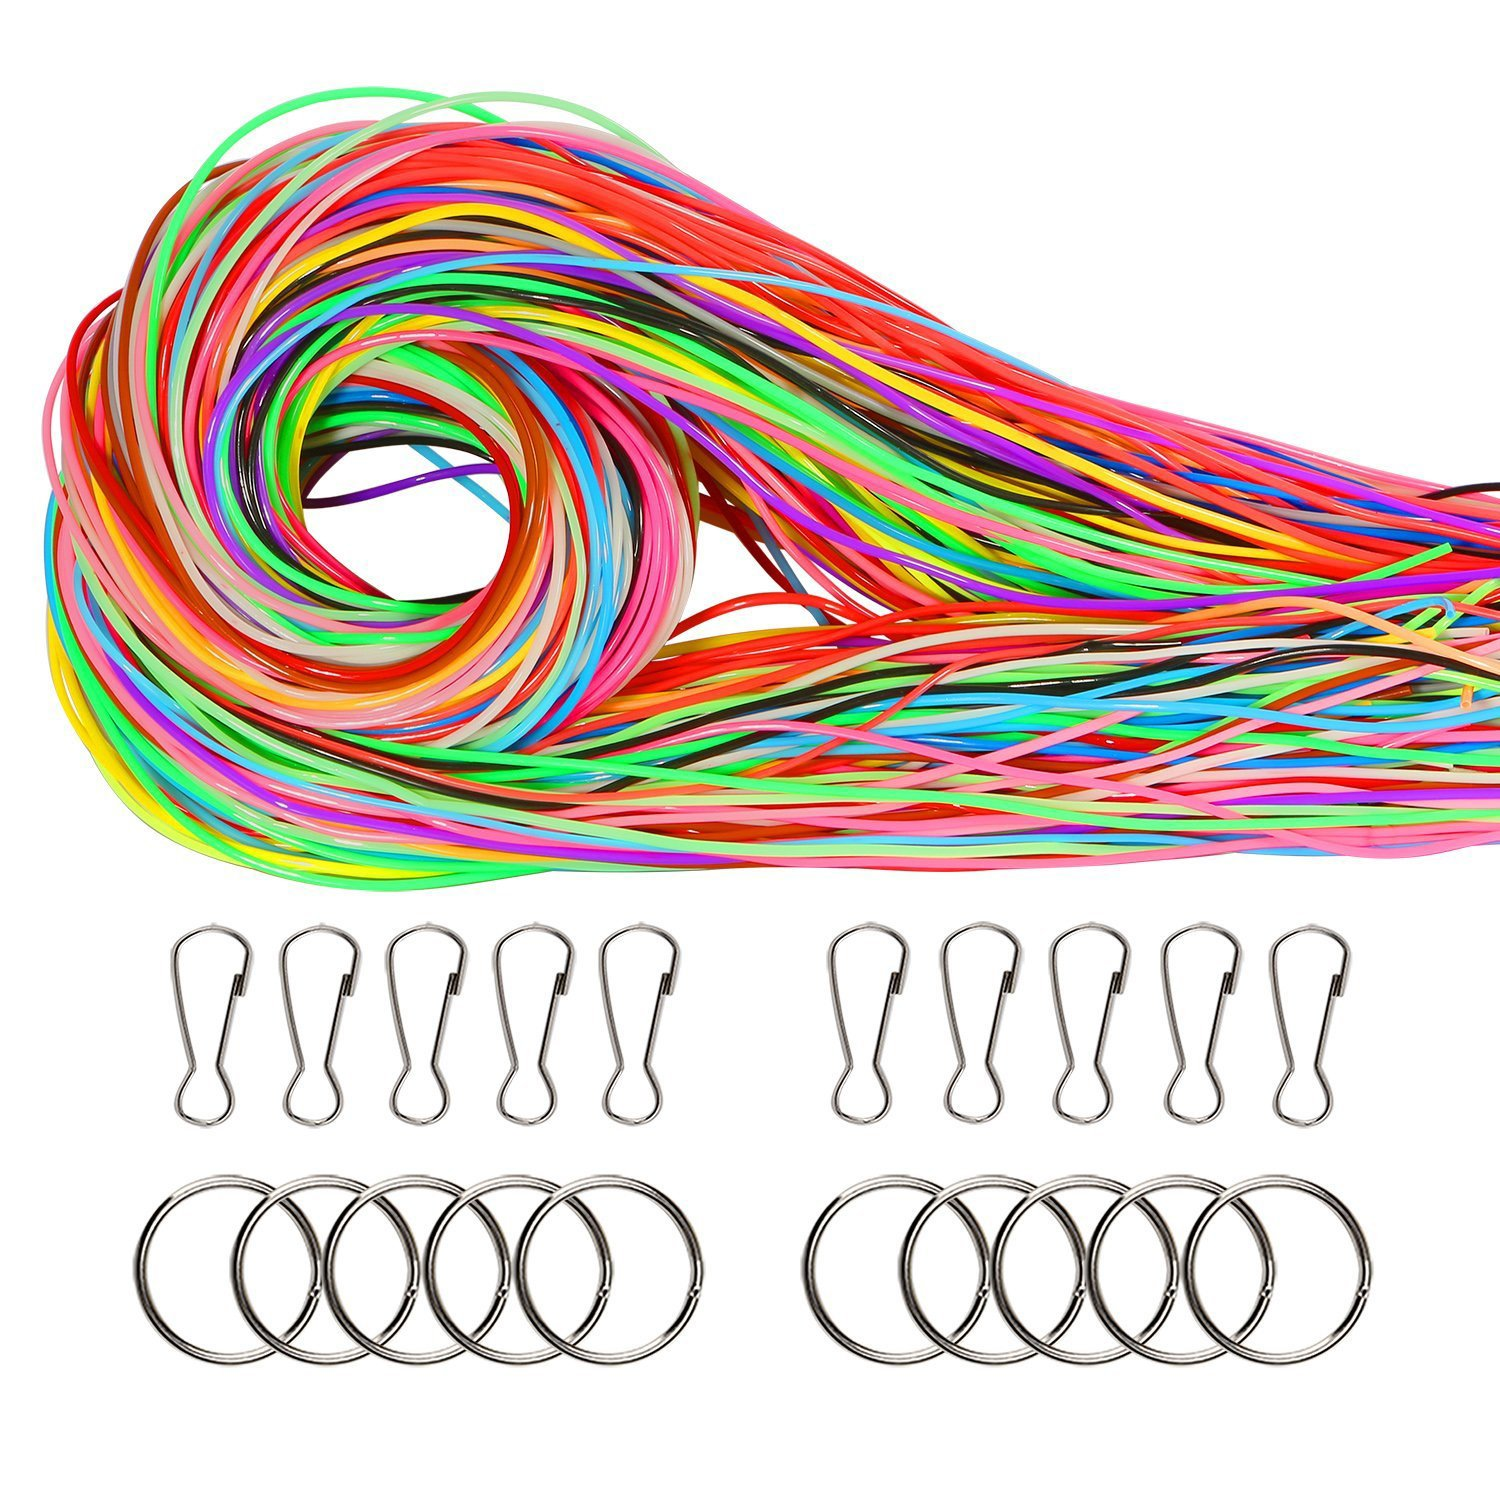 Coobey 160 Pieces Scoubidou Strings DIY Craft Gimp String with Snap Clip Hooks Keychain Ring Clips Plastic Lacing Cord for Jewelry Making, 525-Feet,16 Colors